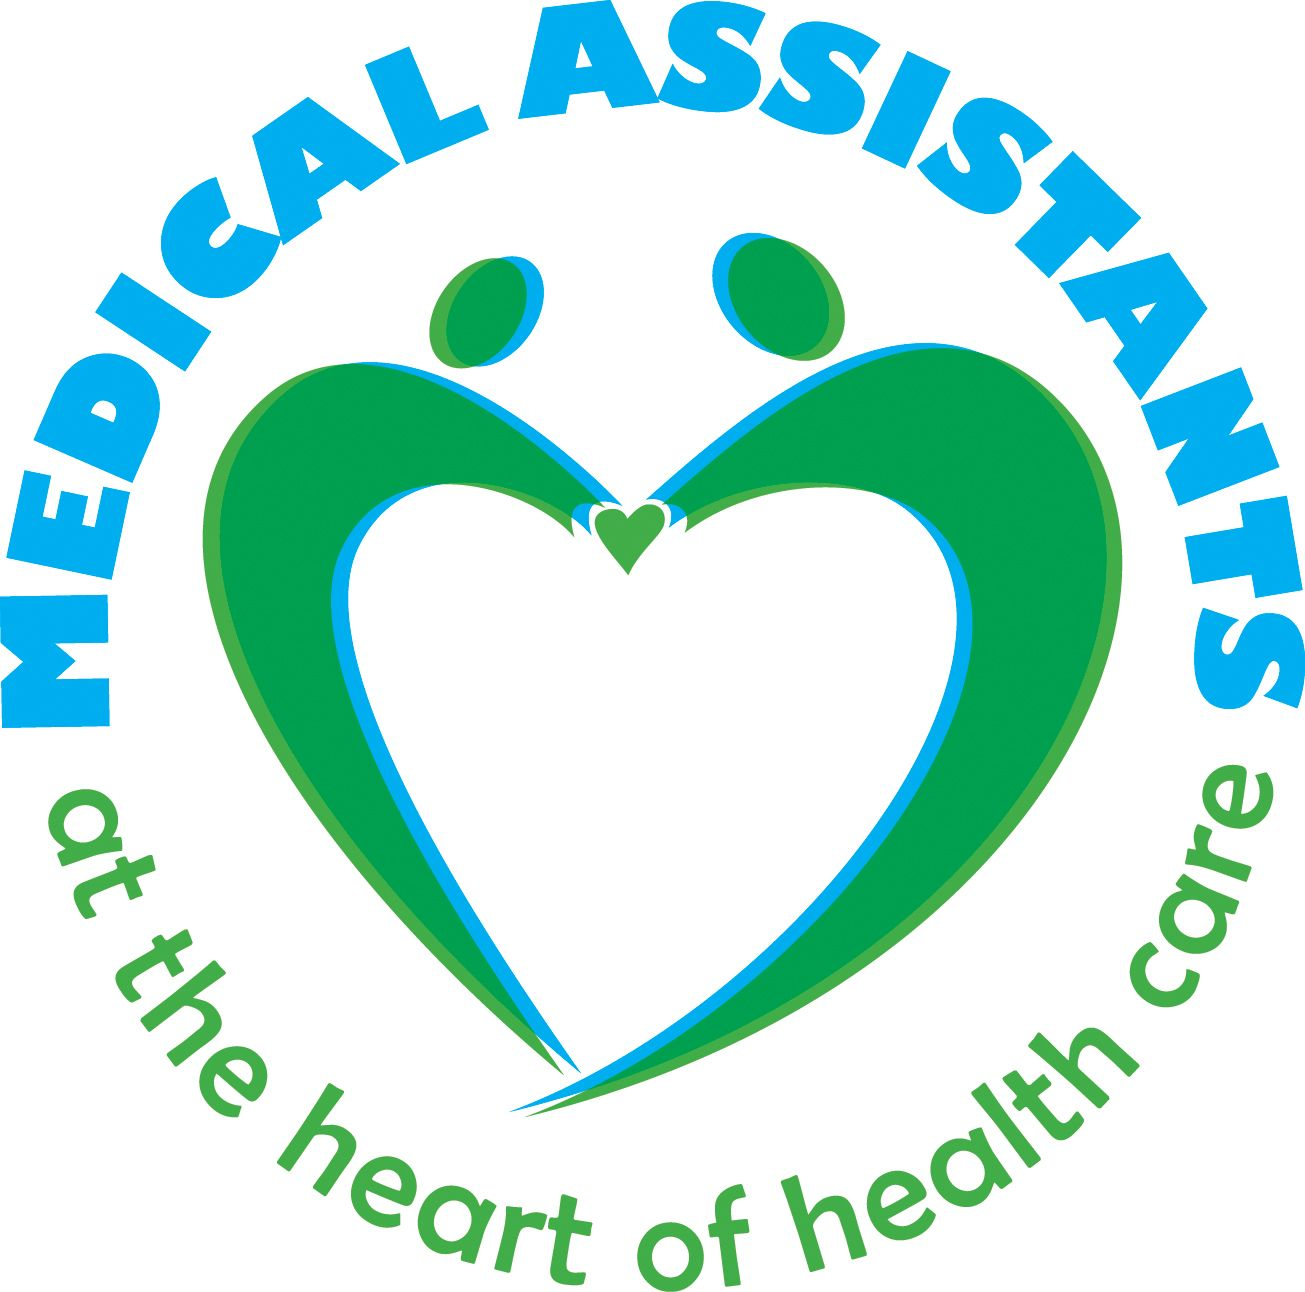 Medical Assistant Recognition Week 2015. October 19th to